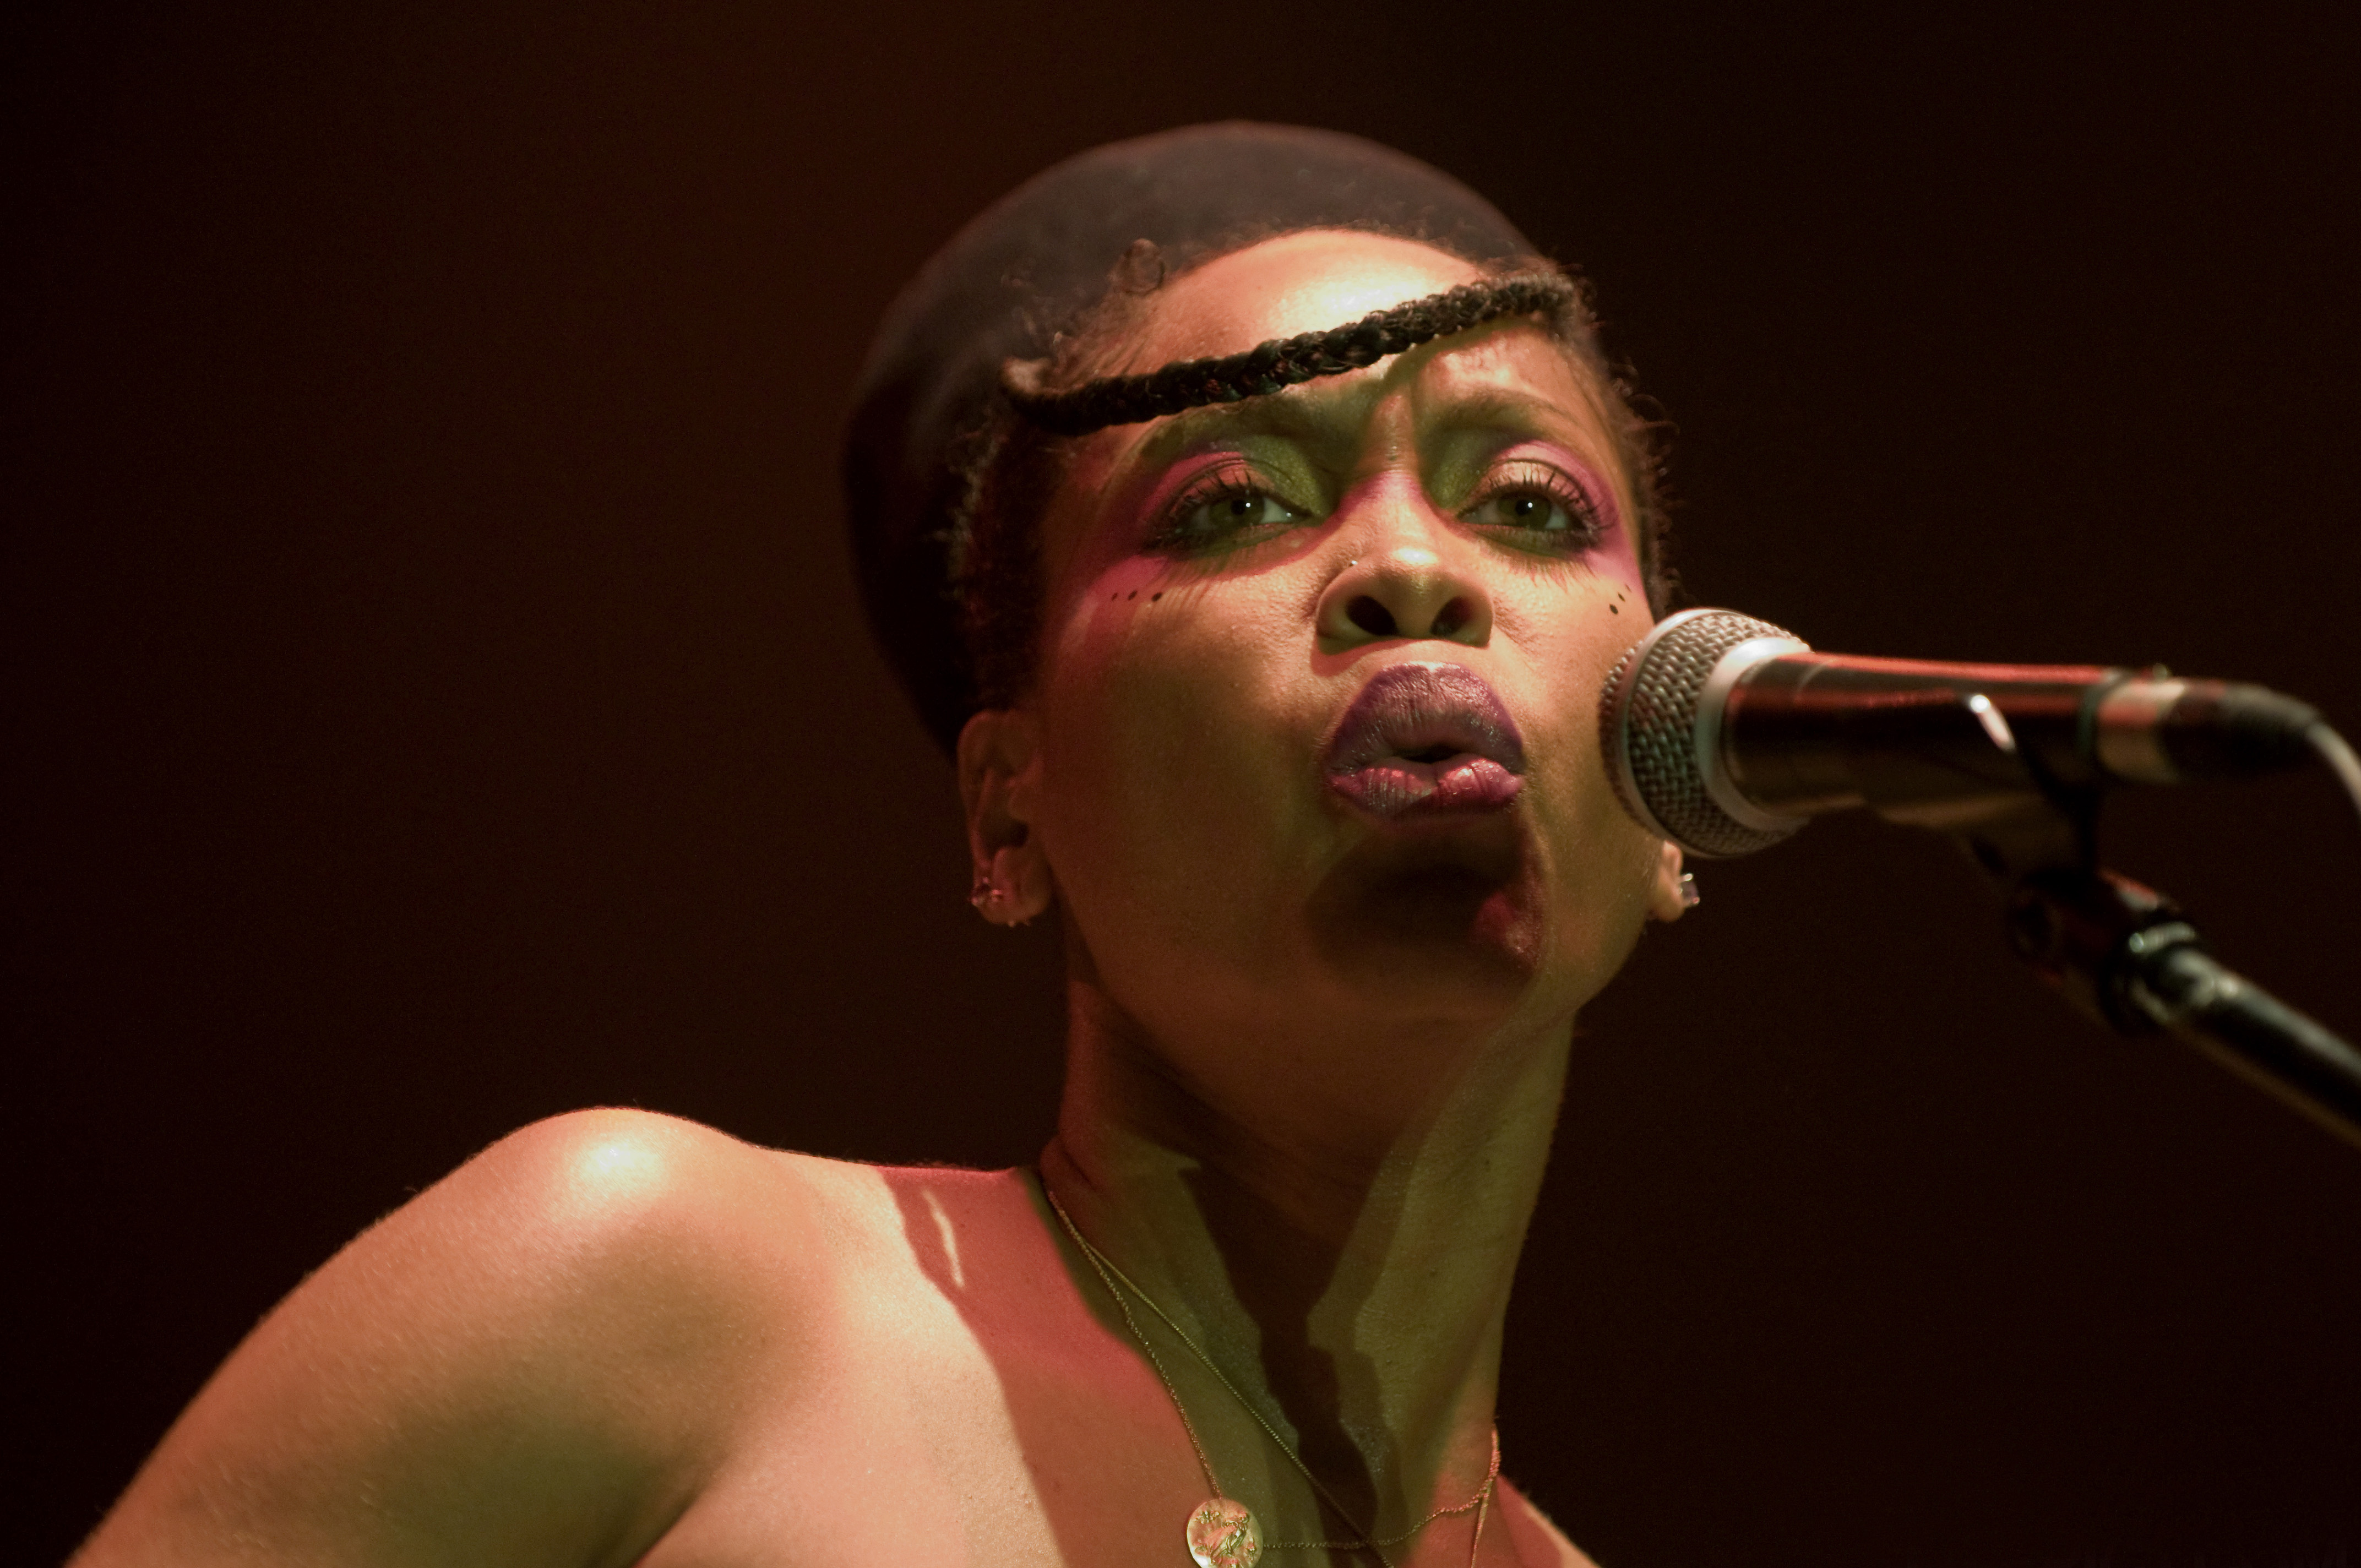 http://upload.wikimedia.org/wikipedia/commons/9/9a/Erykah_Badu_cs.jpg